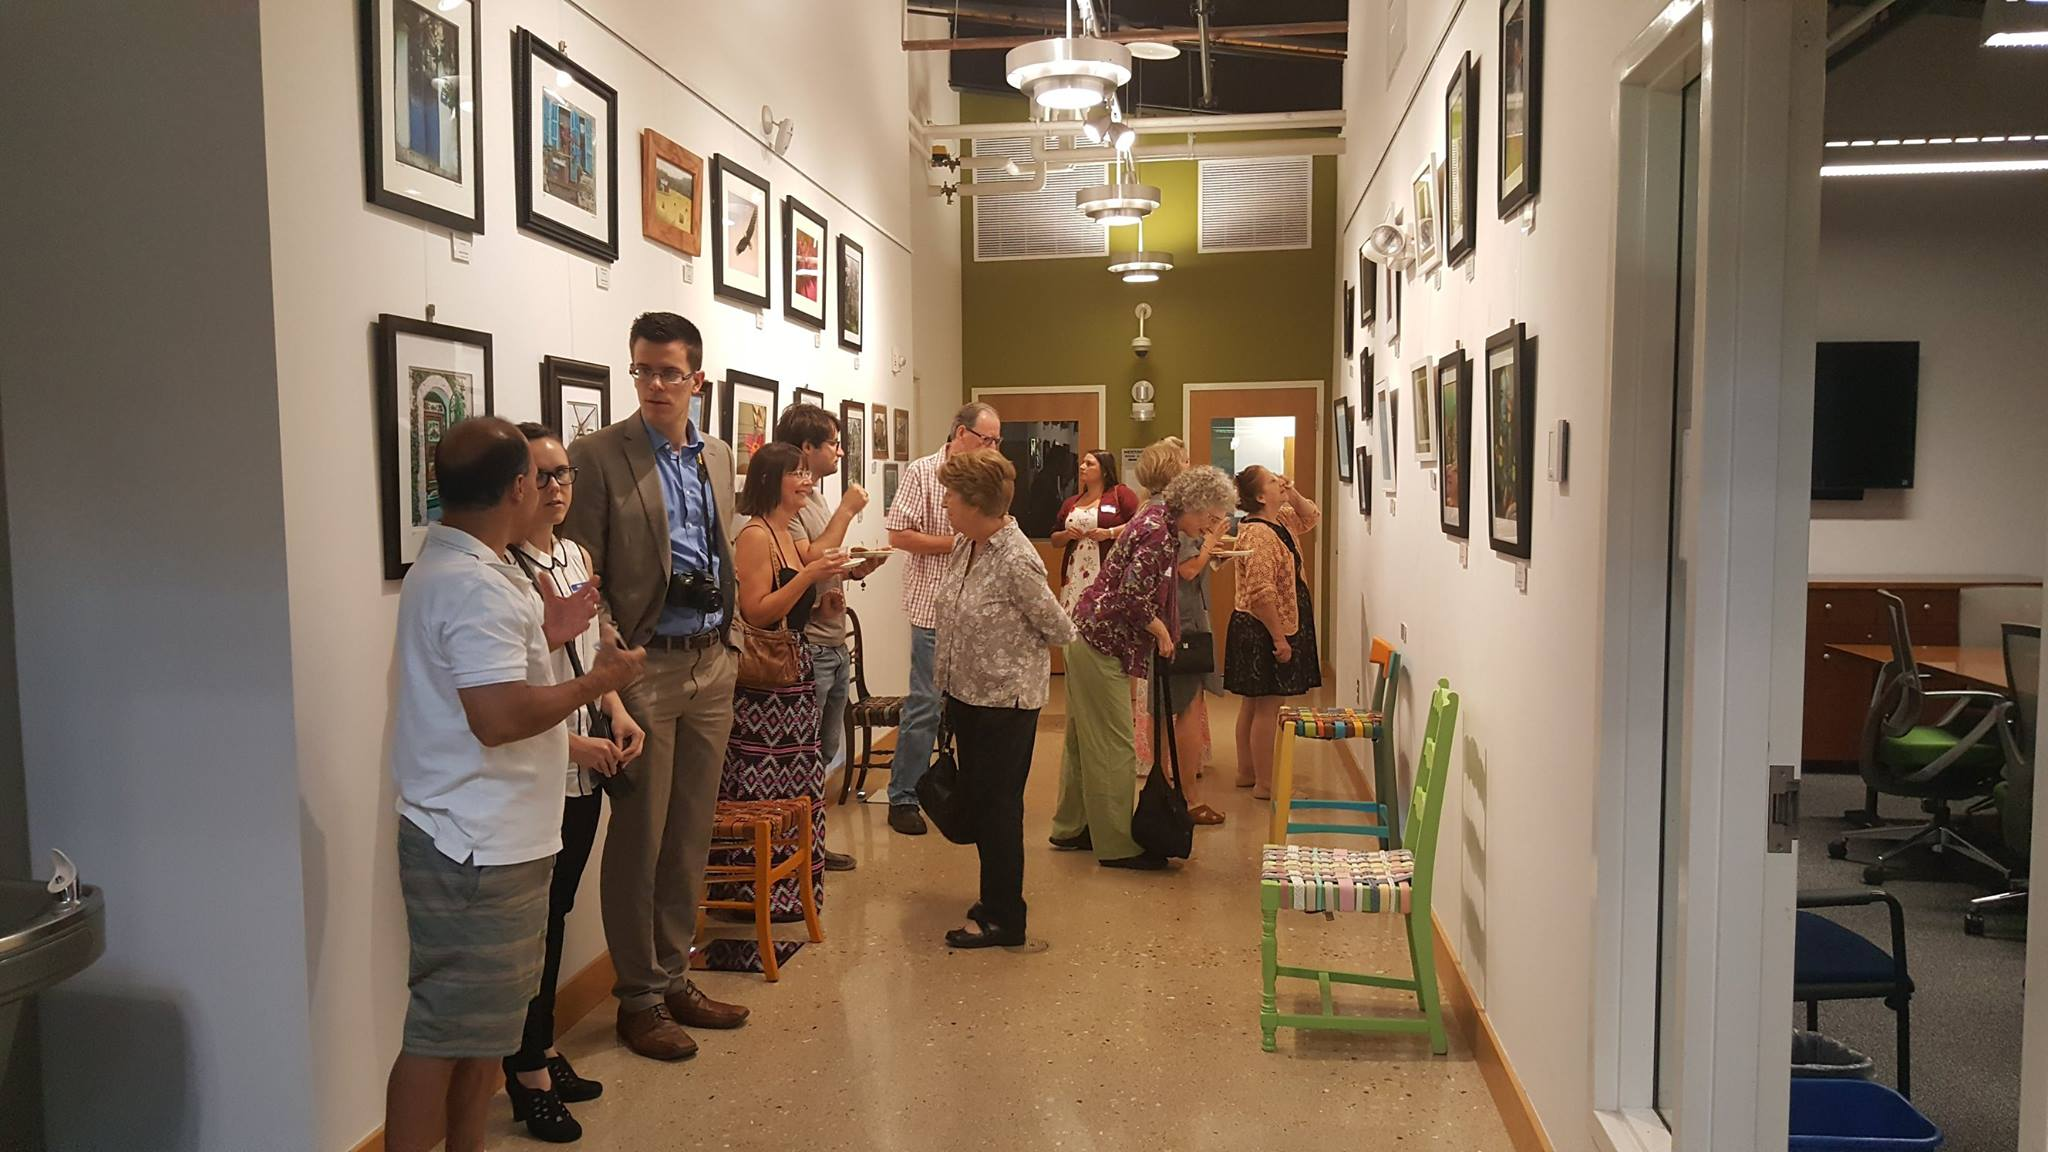 Gallery 125 at Sugar Grove Library